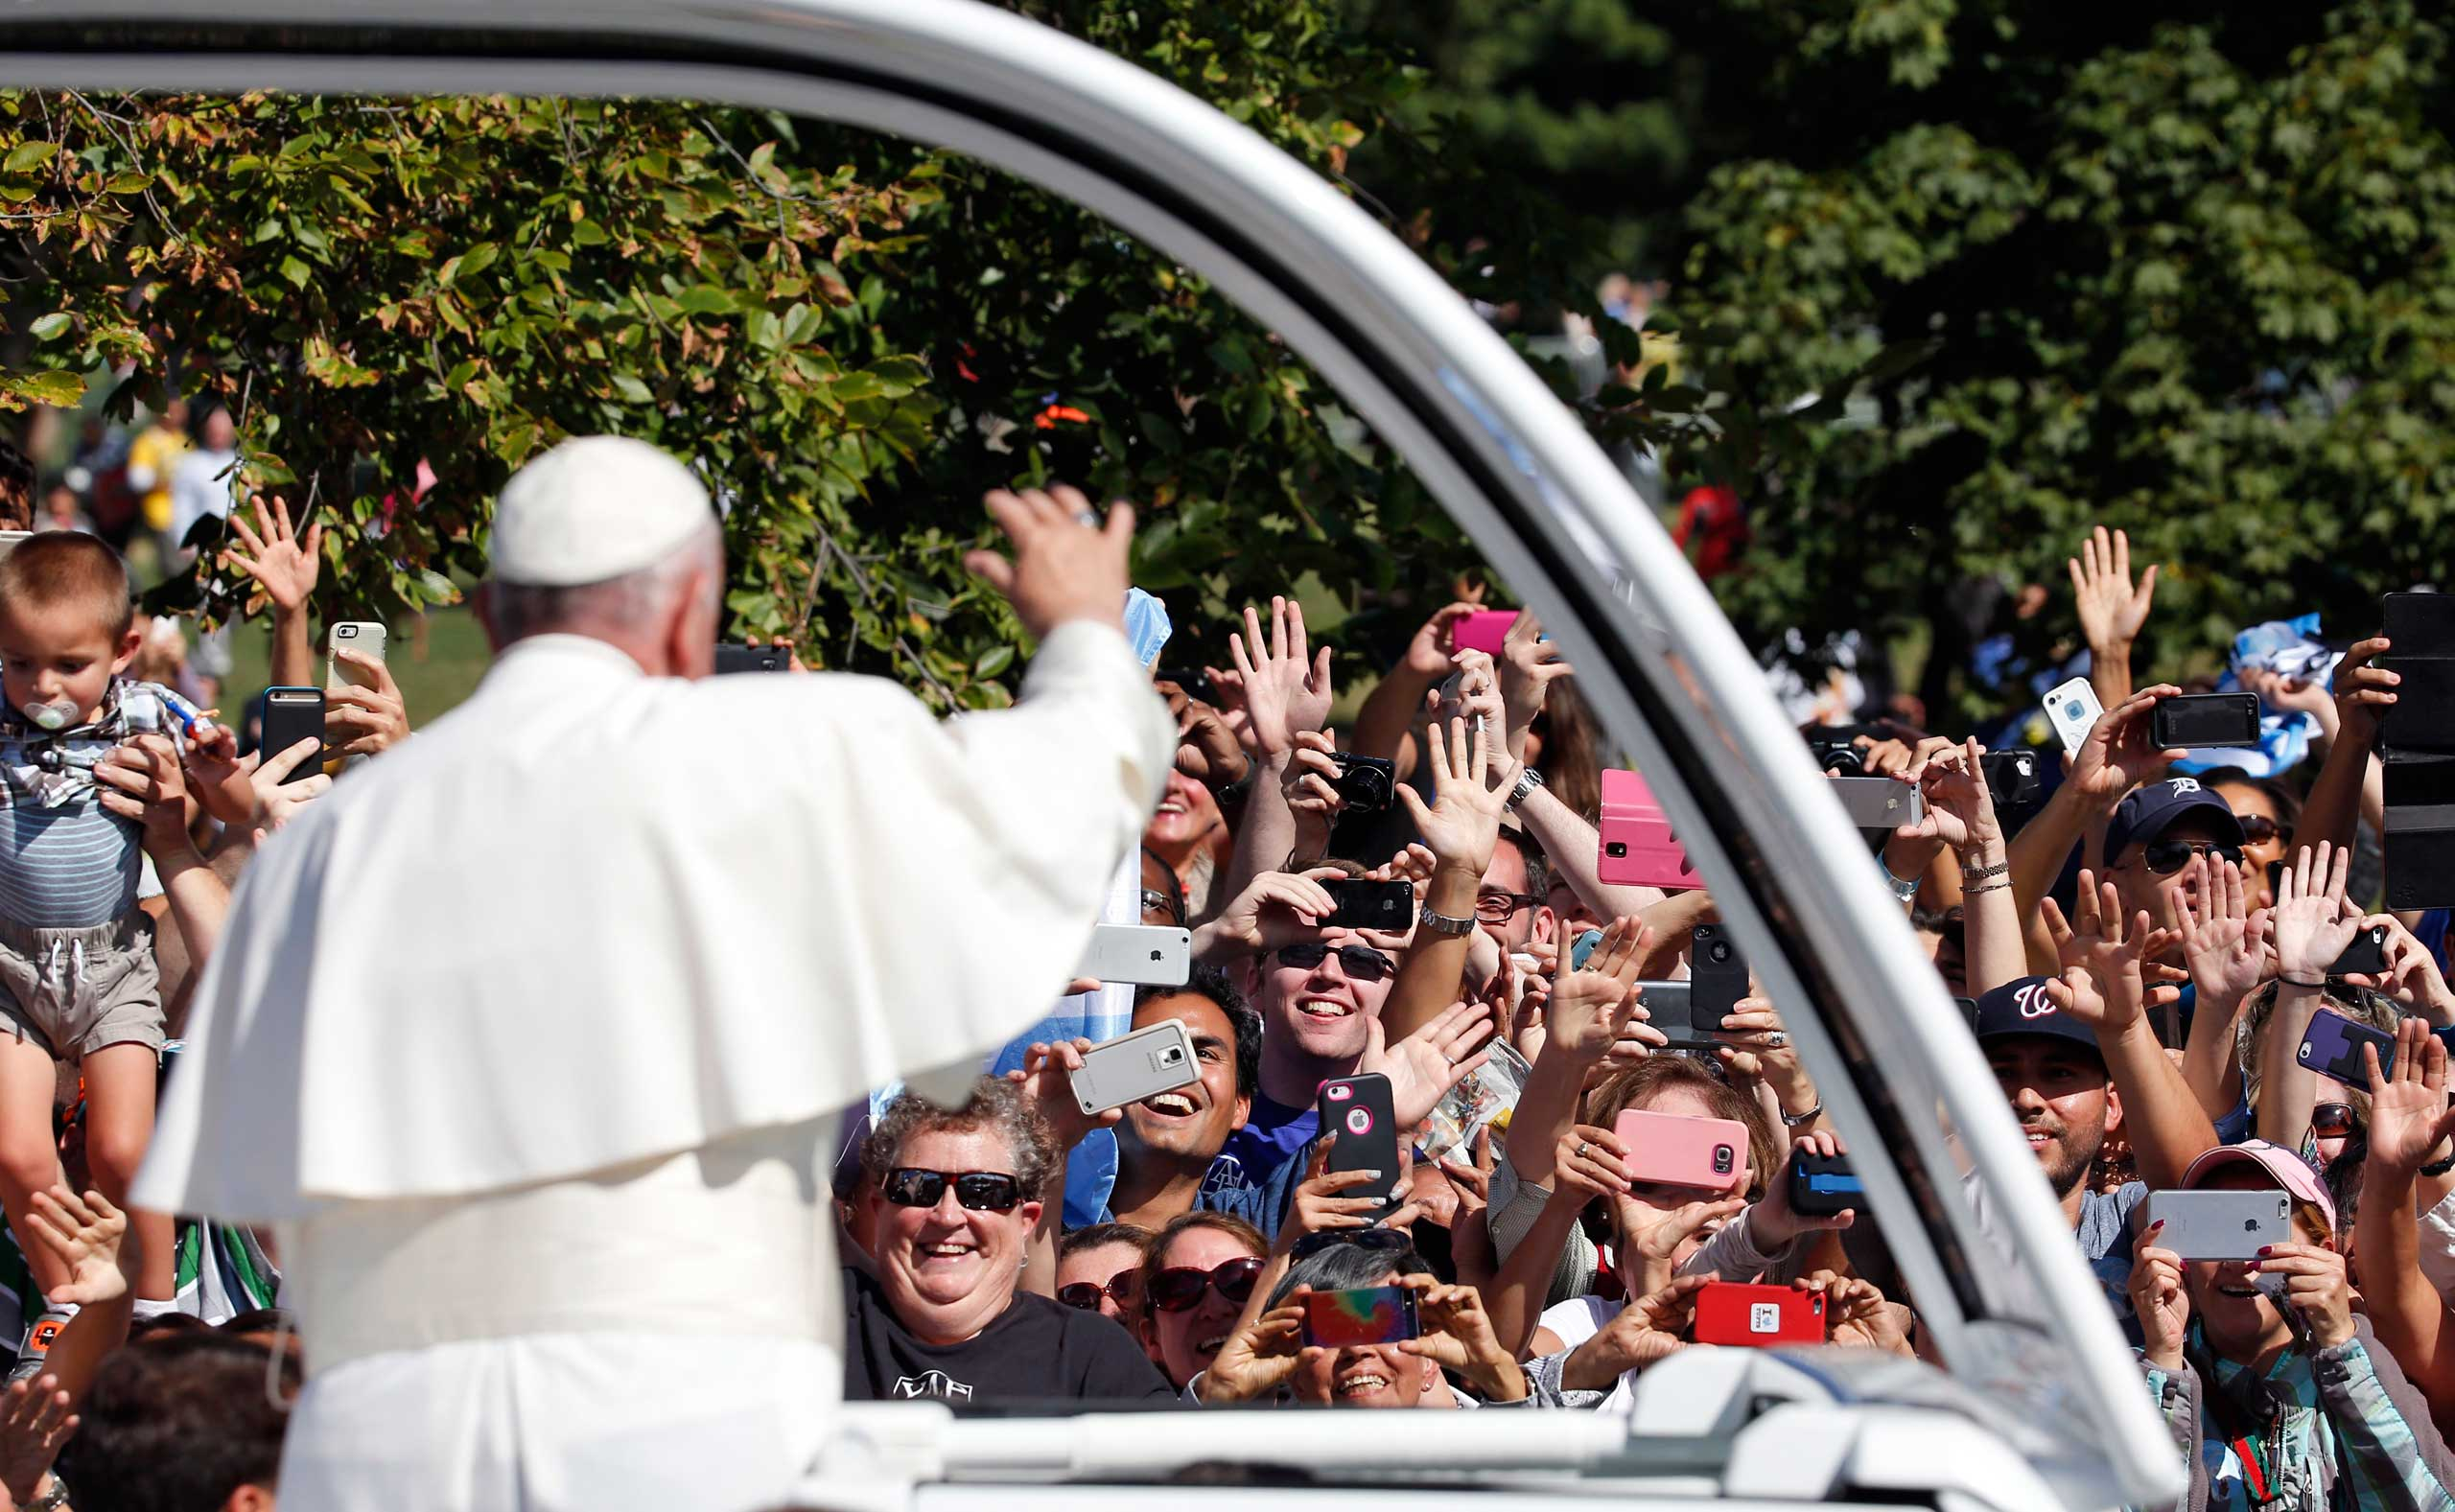 Pope Francis waves to the crowd from the popemobile during a parade in Washington, on Sept. 23, 2015.